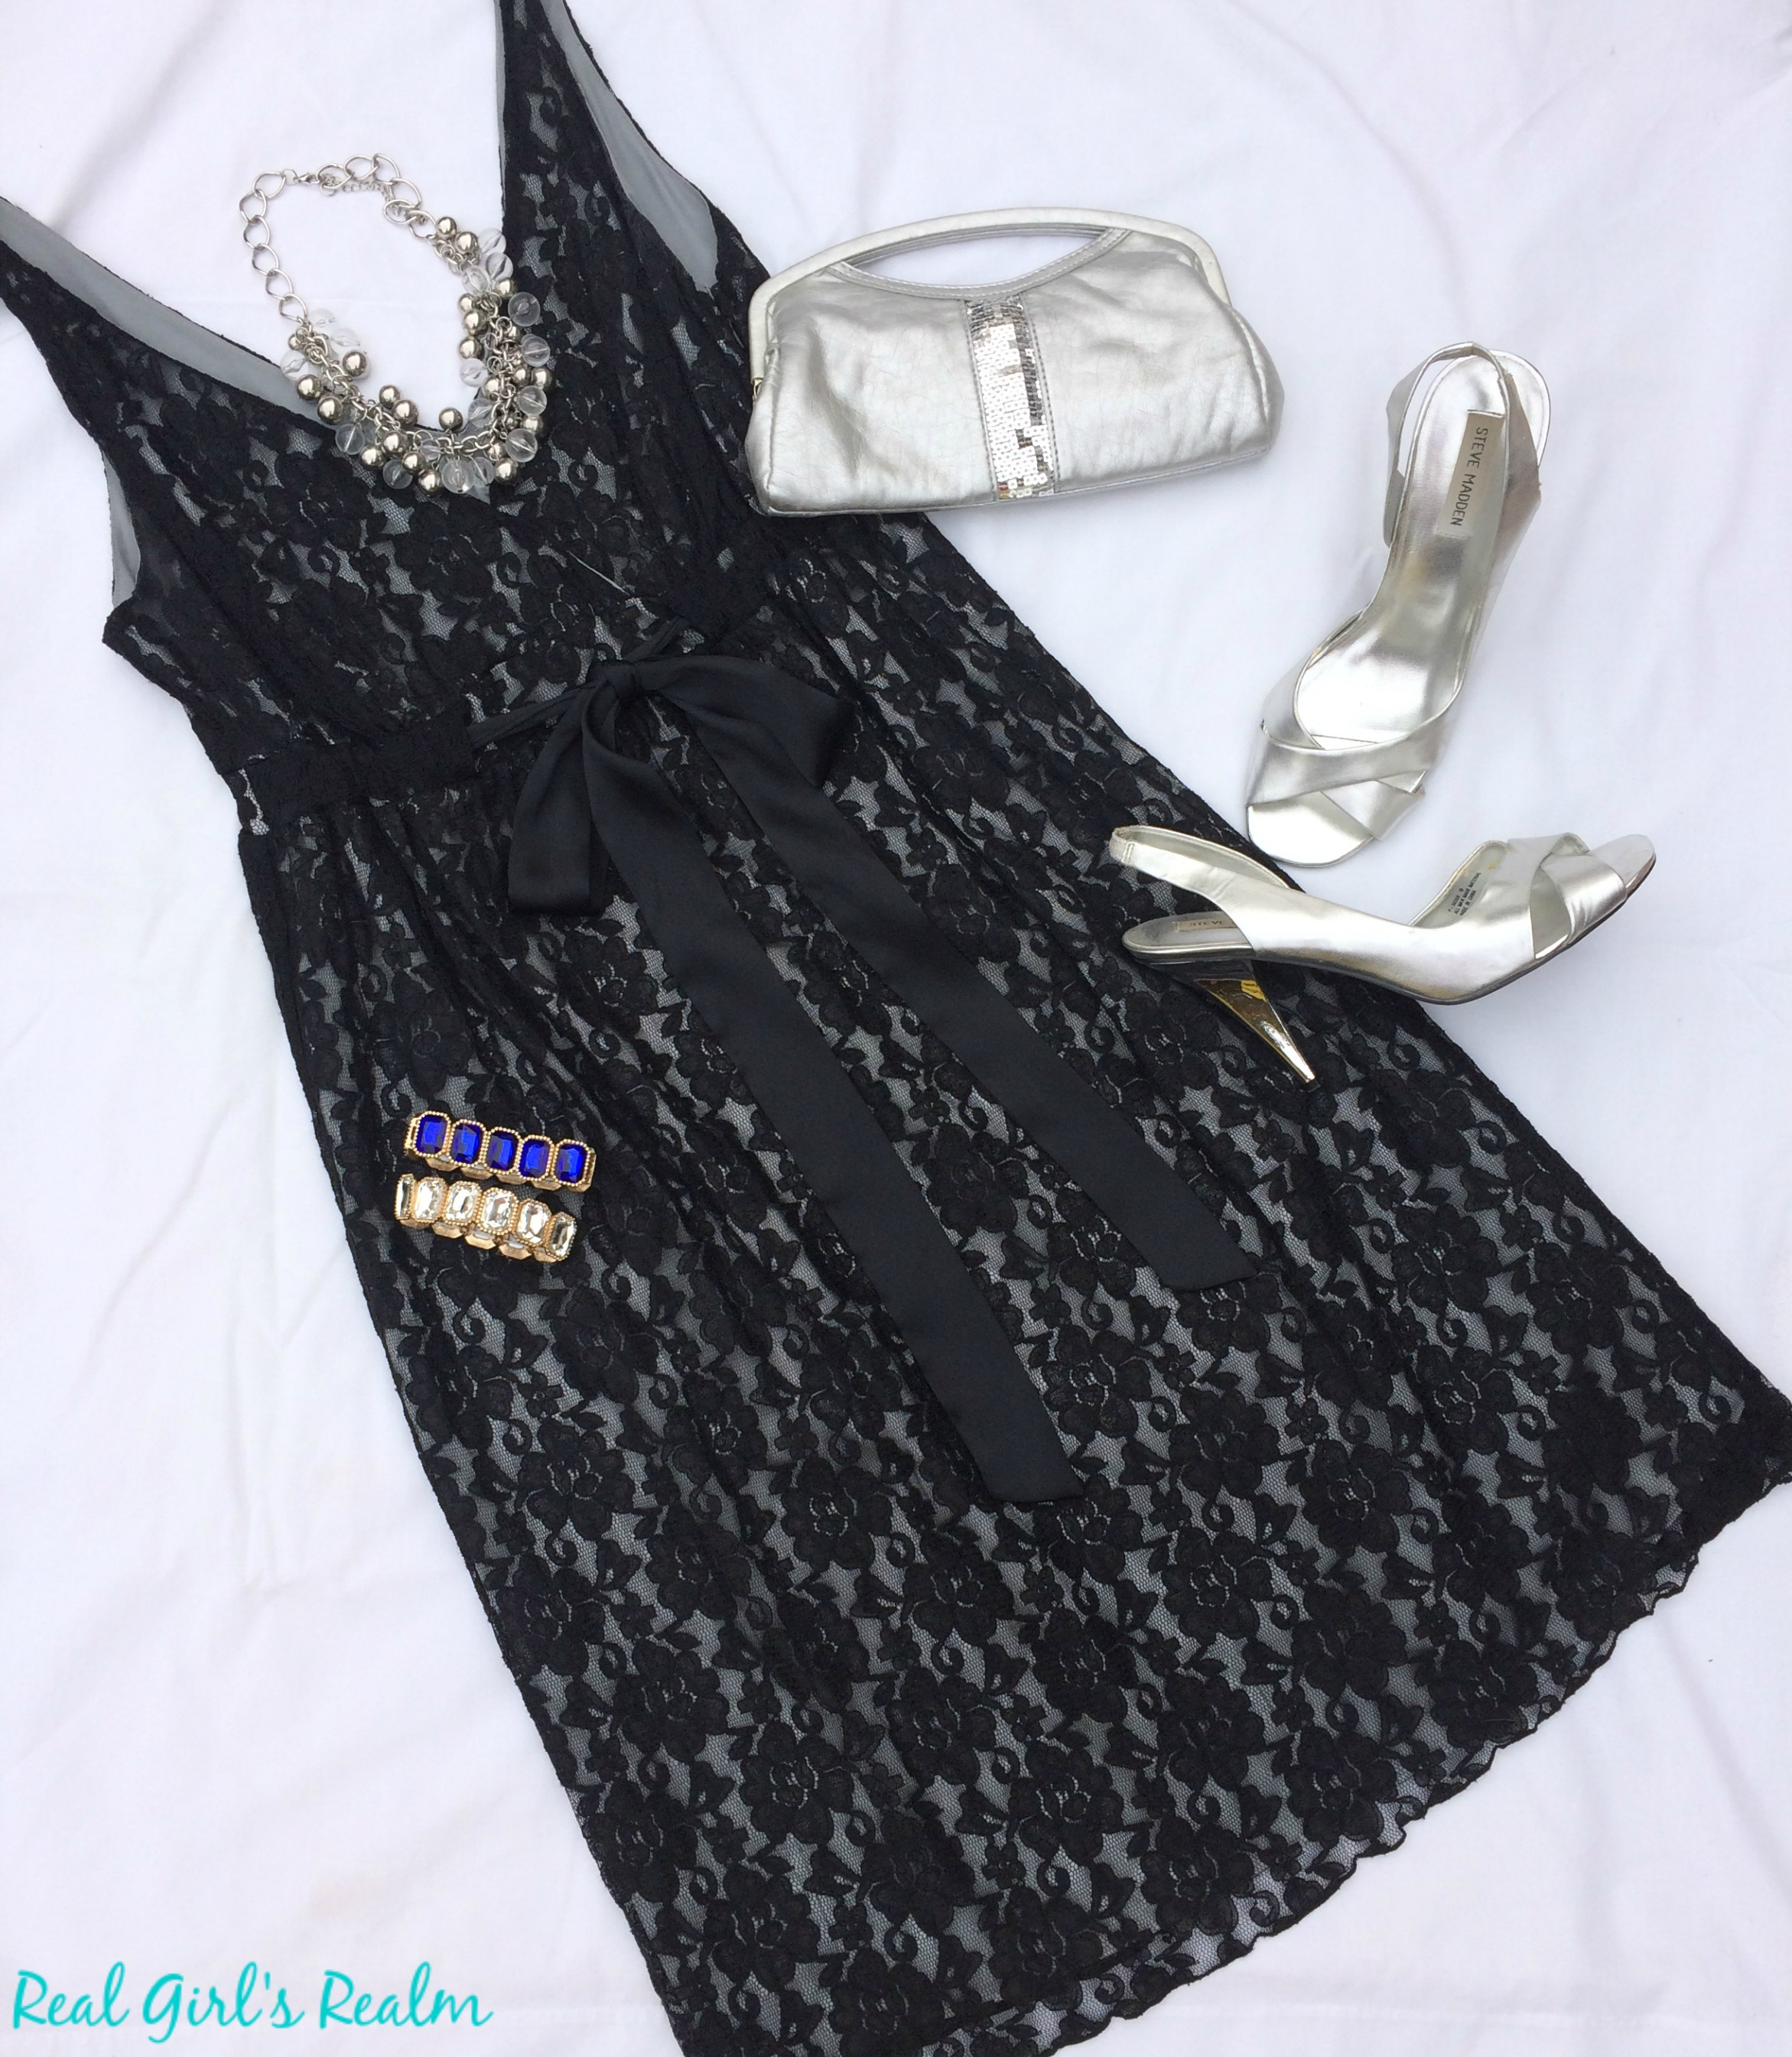 Whether you are celebrating with your spouse or planning a girl's night out, I have three stylish New Year's Eve outfit options for you.